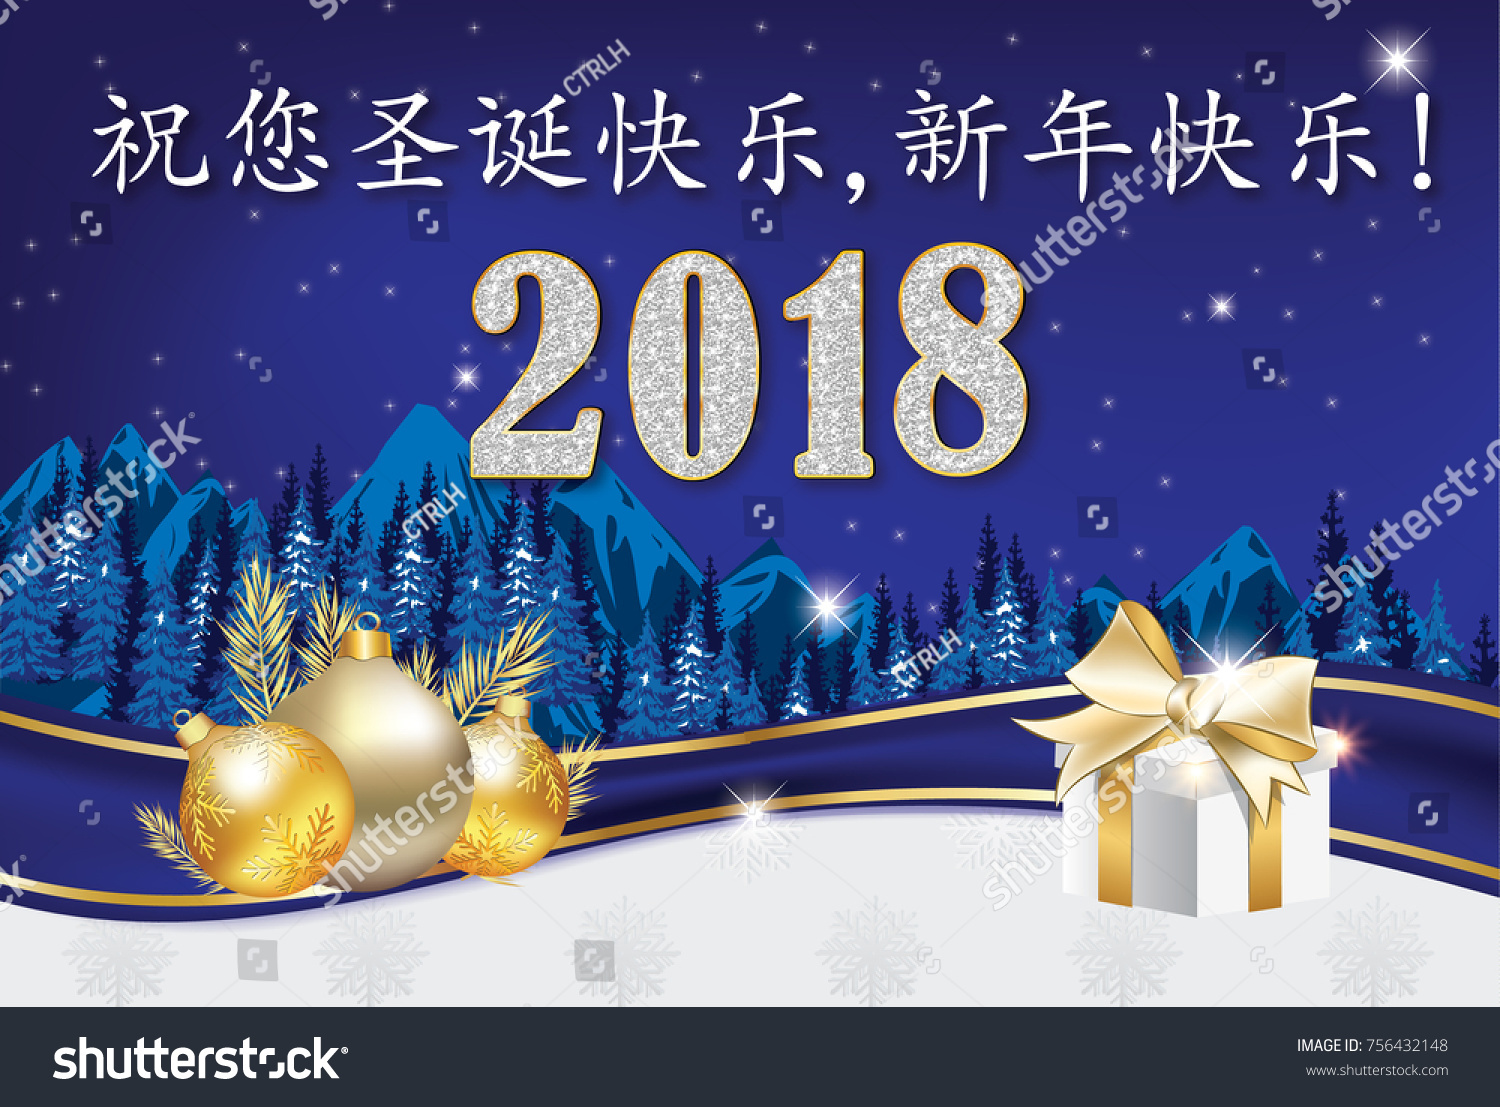 Merry christmas happy new year greeting stock illustration 756432148 merry christmas happy new year greeting card with message in chinese text translation kristyandbryce Gallery